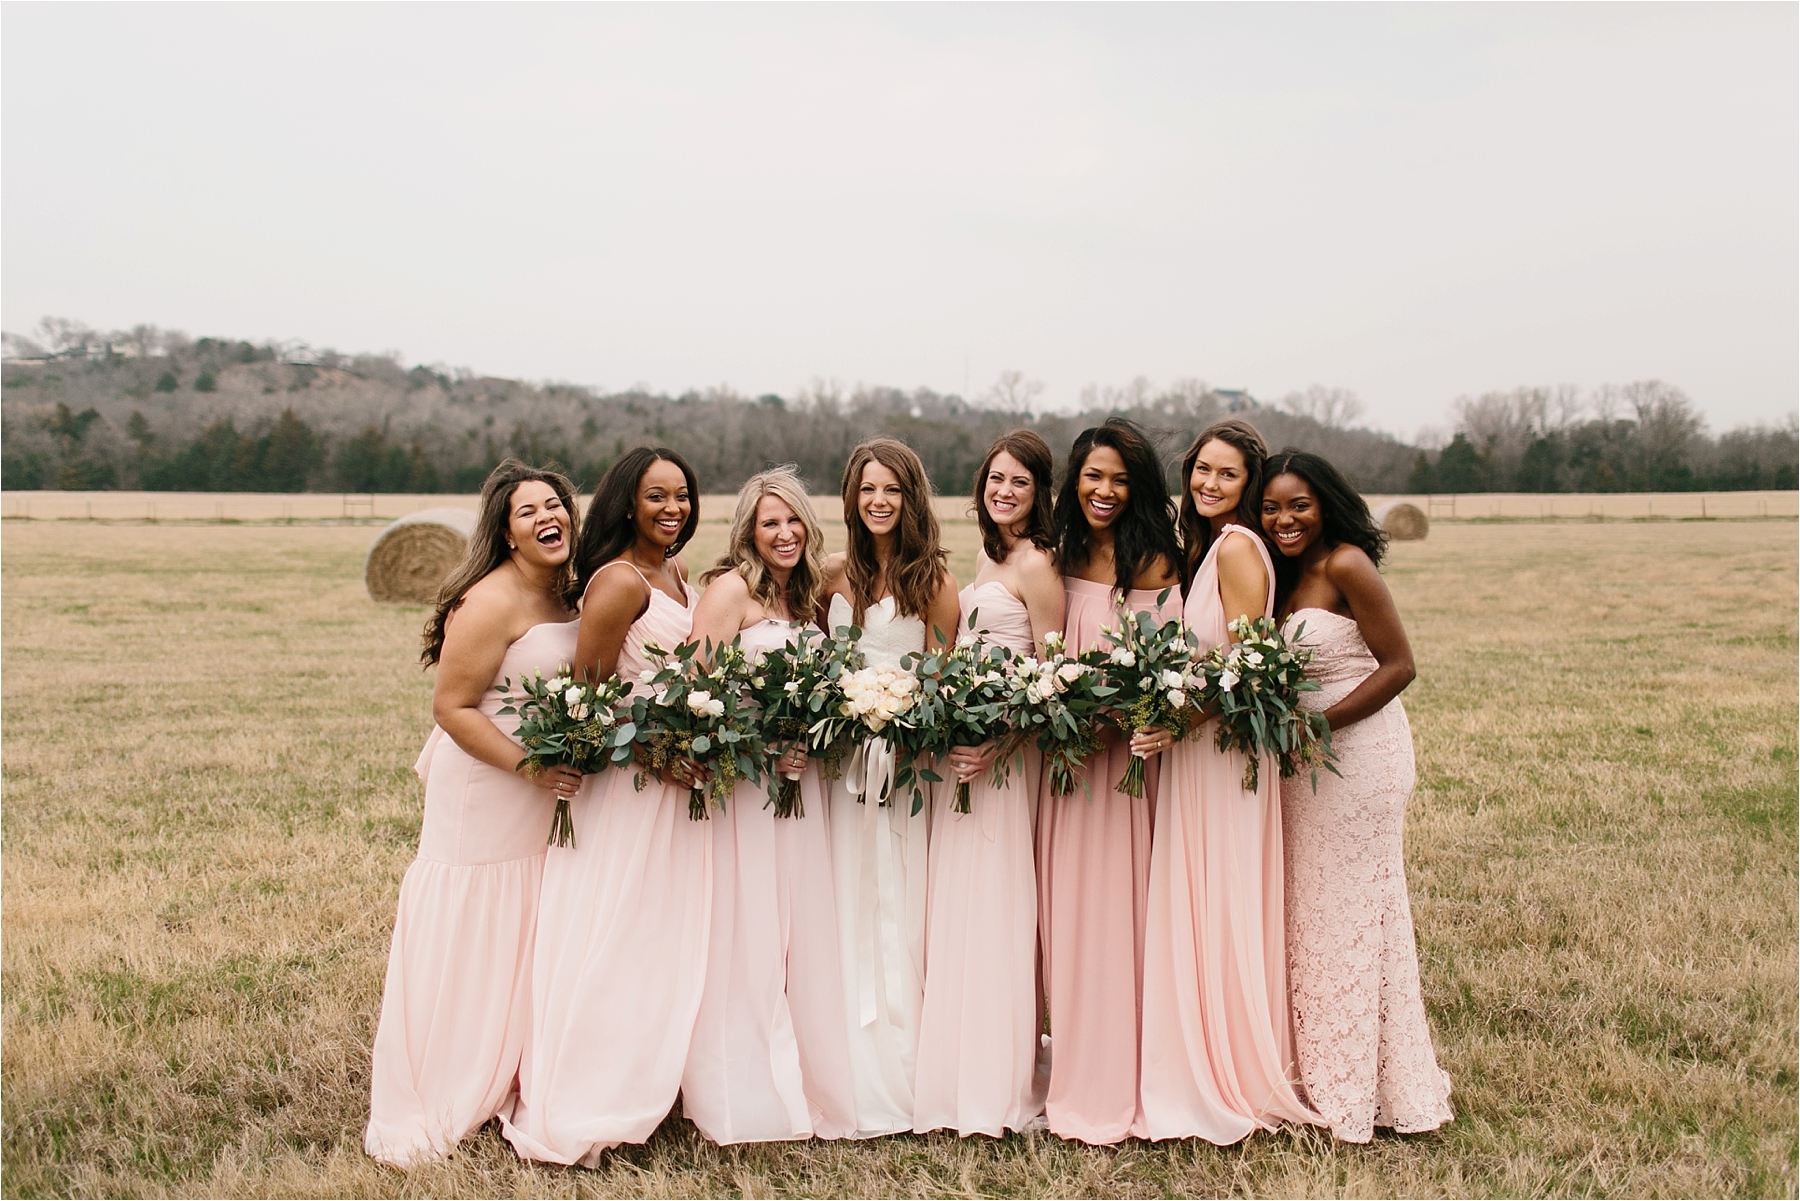 Lauren + Matt __ an intimate, emotional, blush pink, navy blue, and greenery toned wedding accents at the Brooks at Weatherford by North Texas Wedding Photographer Rachel Meagan Photography073